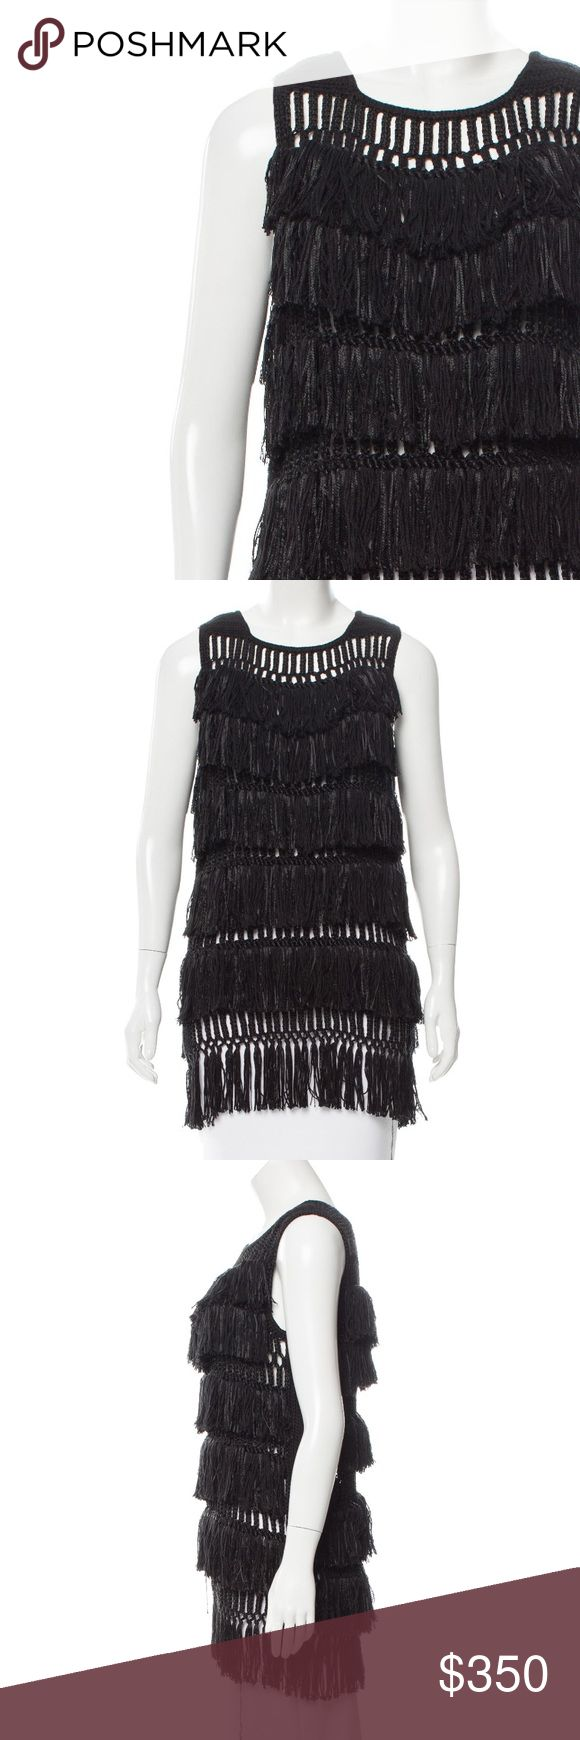 """⭐️ Maiyet Black Fringed Top Maiyet handmade sleeveless fringed top. Stand apart with this exceptional top!  54% Cellulose 13% Cashmere  13% Silk  35"""" Bust 34"""" Waist  30 1/2"""" Hips  Maiyet Black fringed Cashmere and Silk Top Maiyet Tops Blouses"""